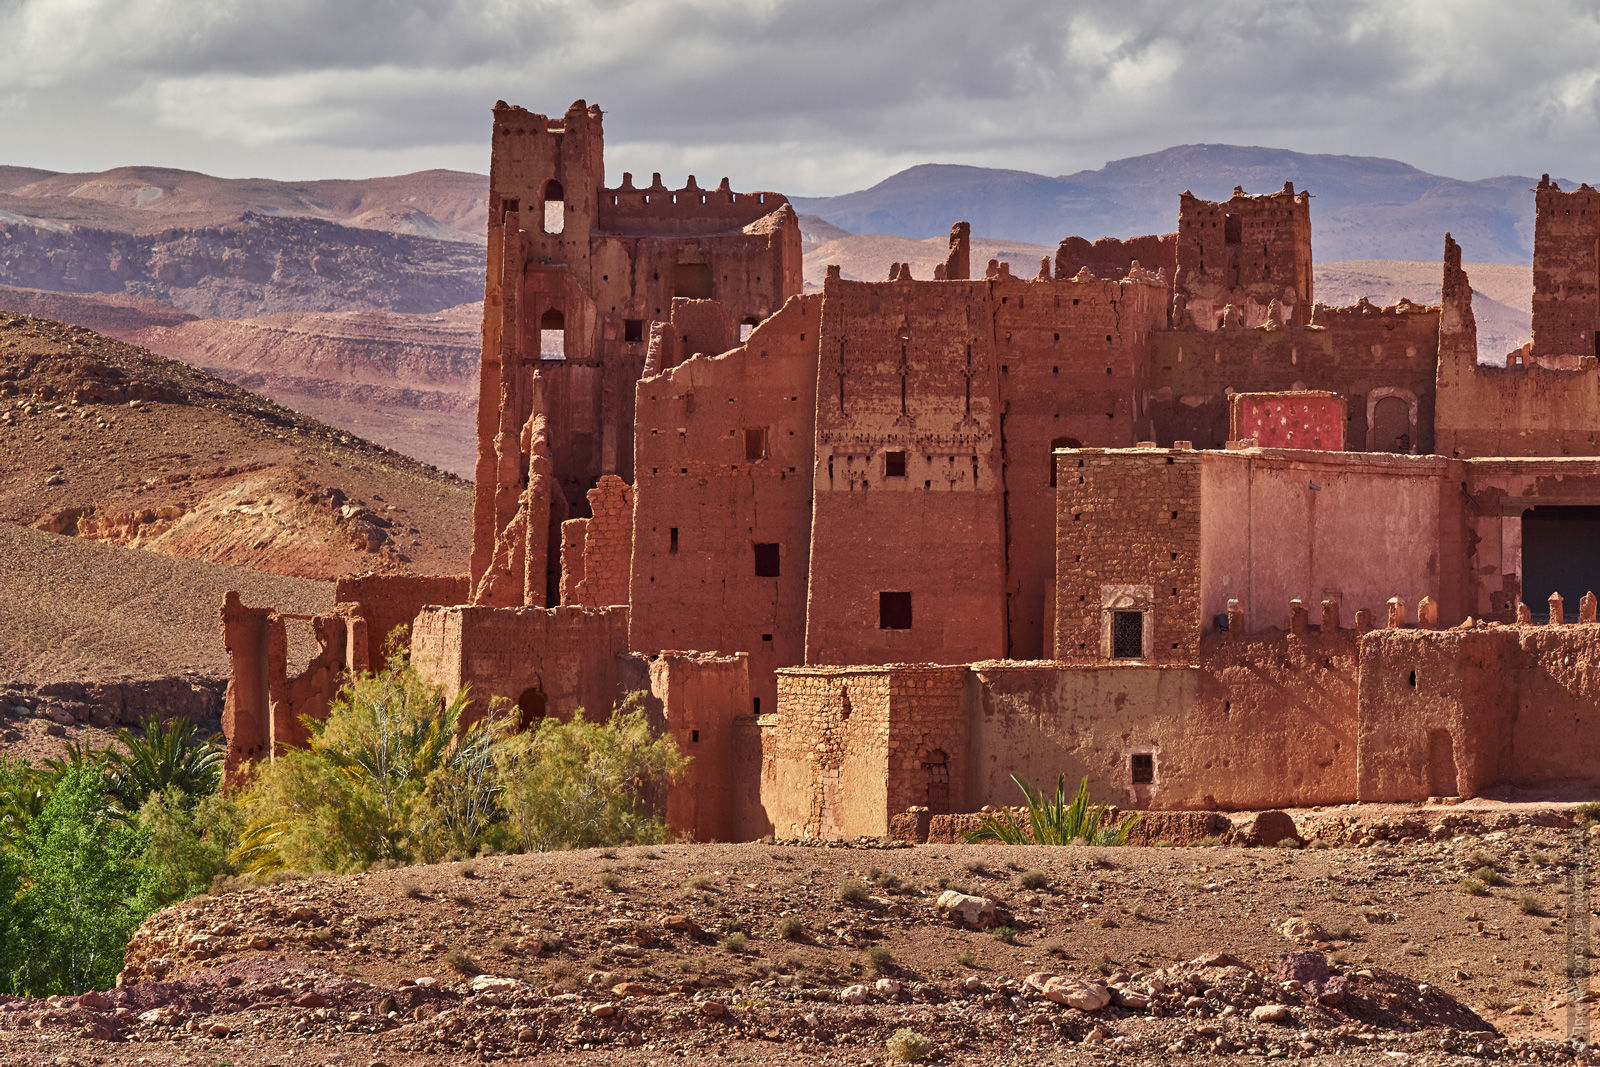 Kasbah, Morocco, photo tour of Morocco, October 2018.